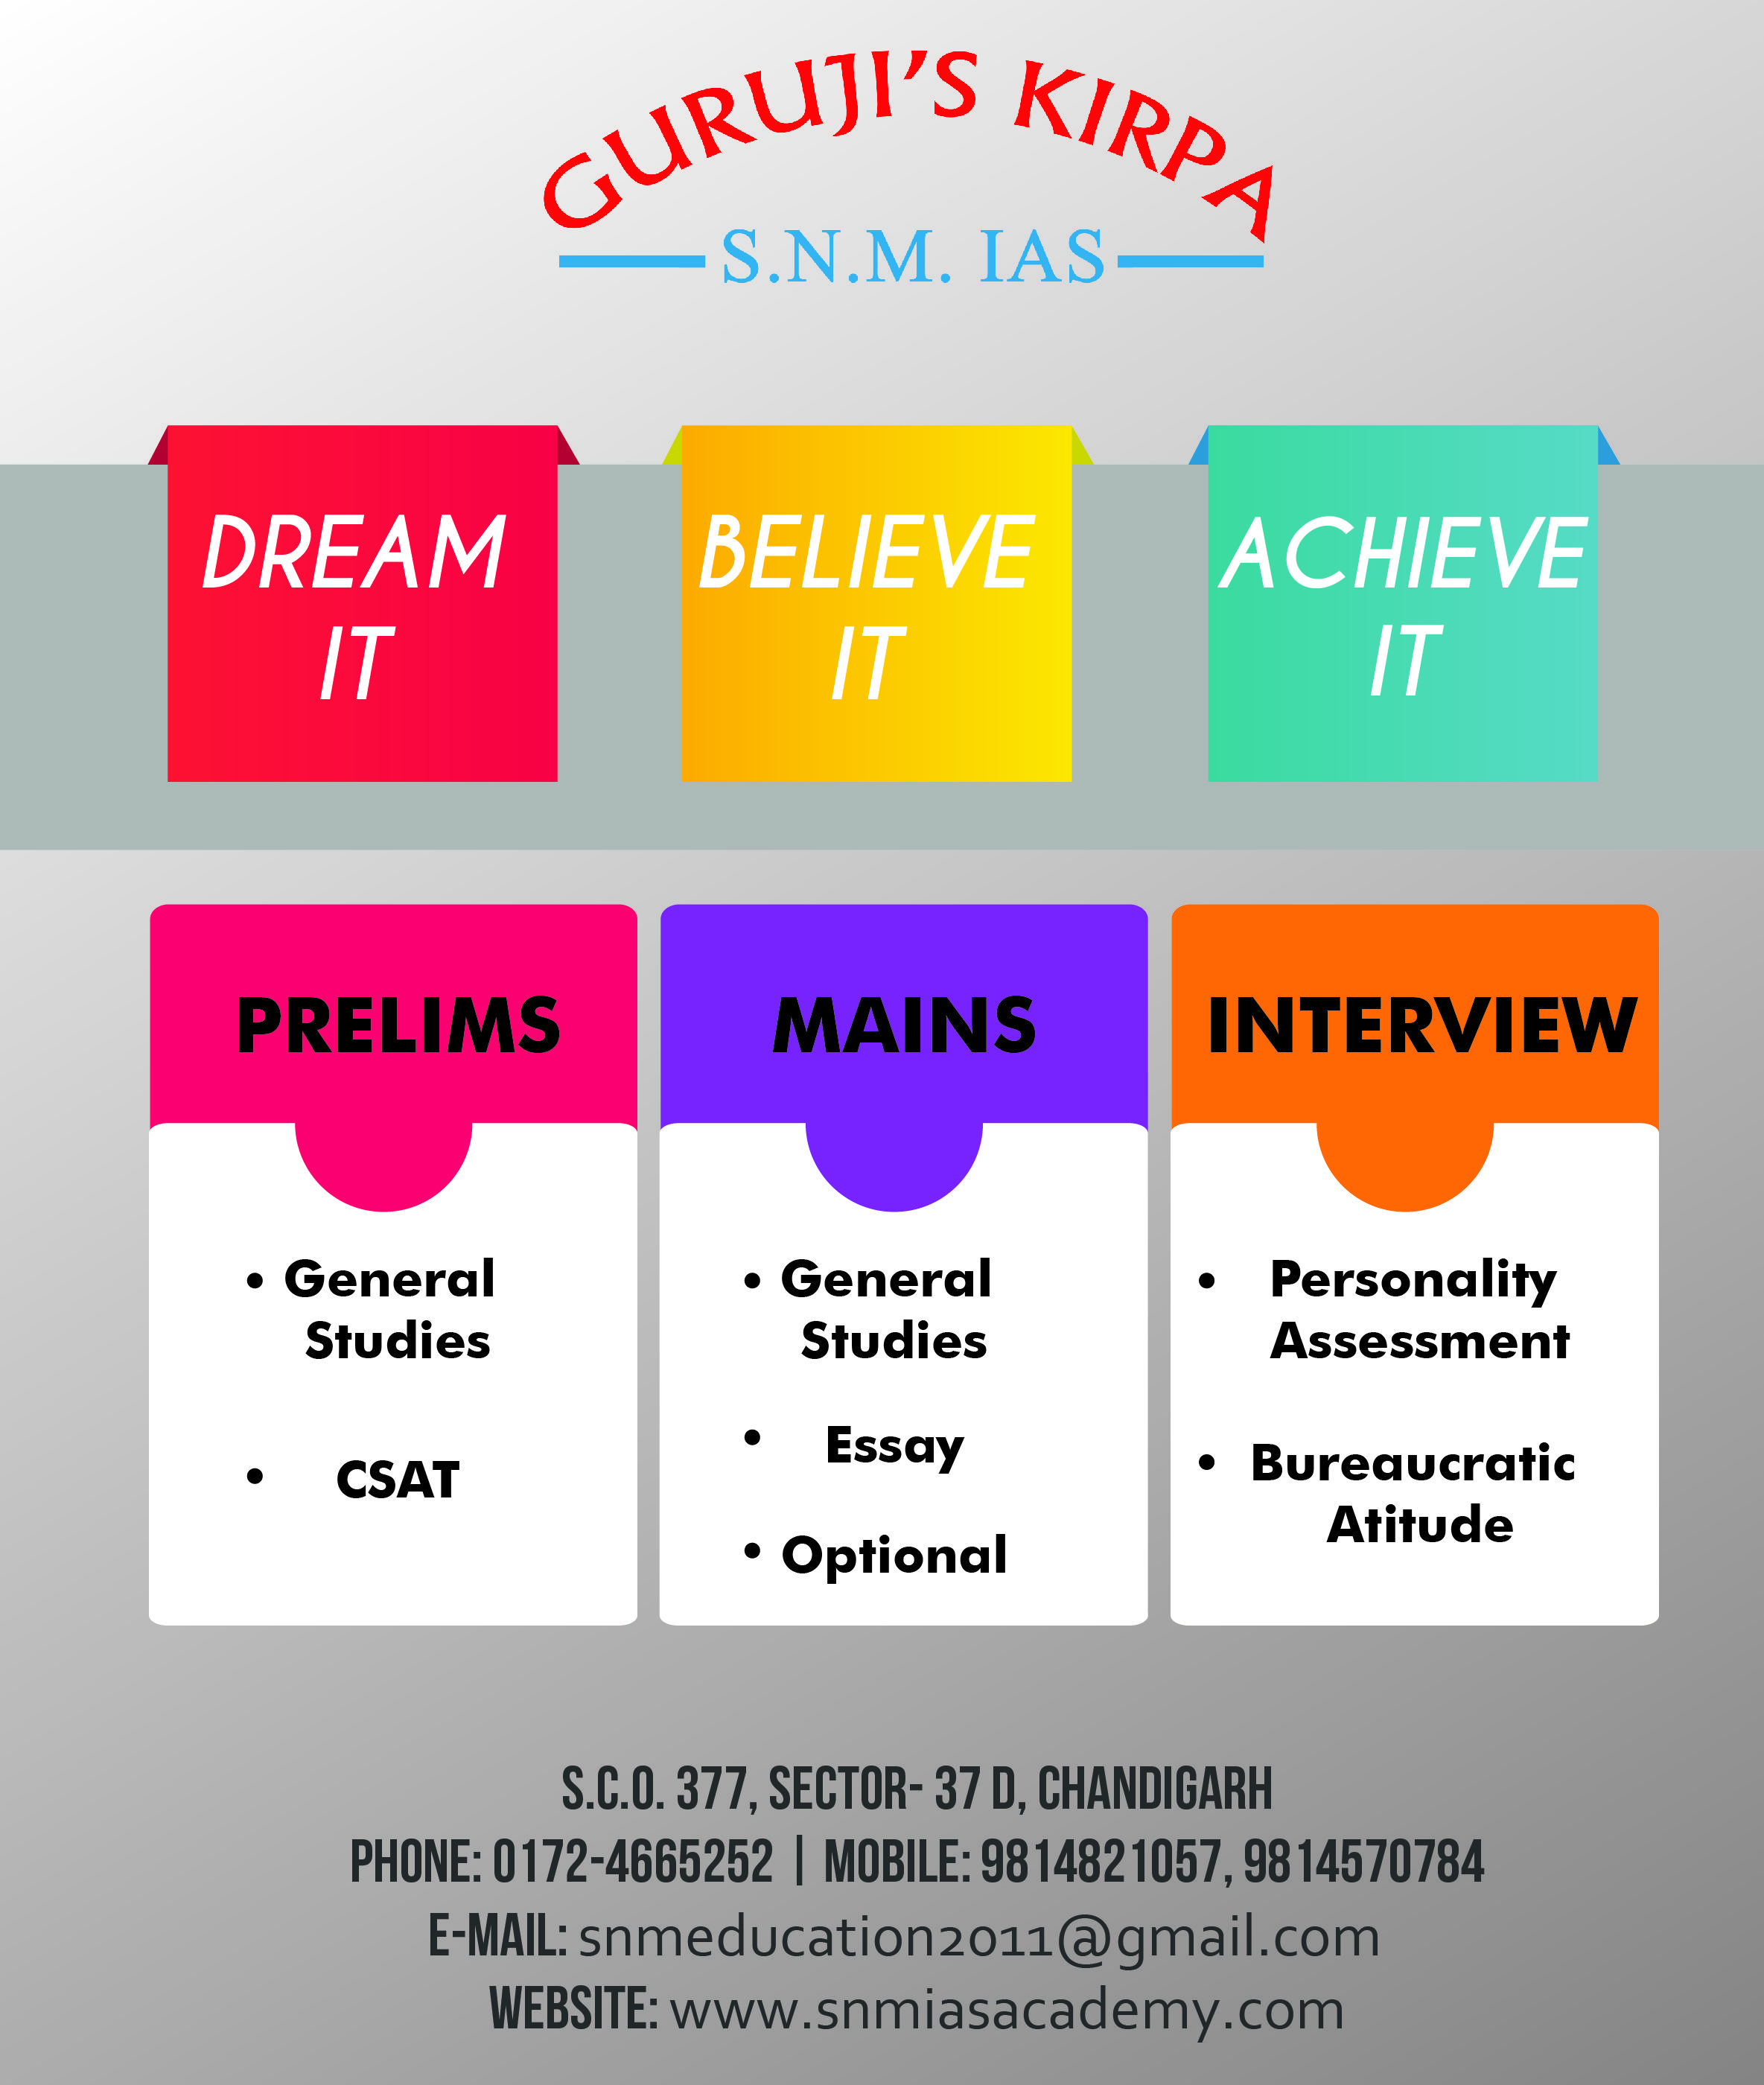 SNMIASACADEMY is now at you city Chandigarh for IAS ,PCS